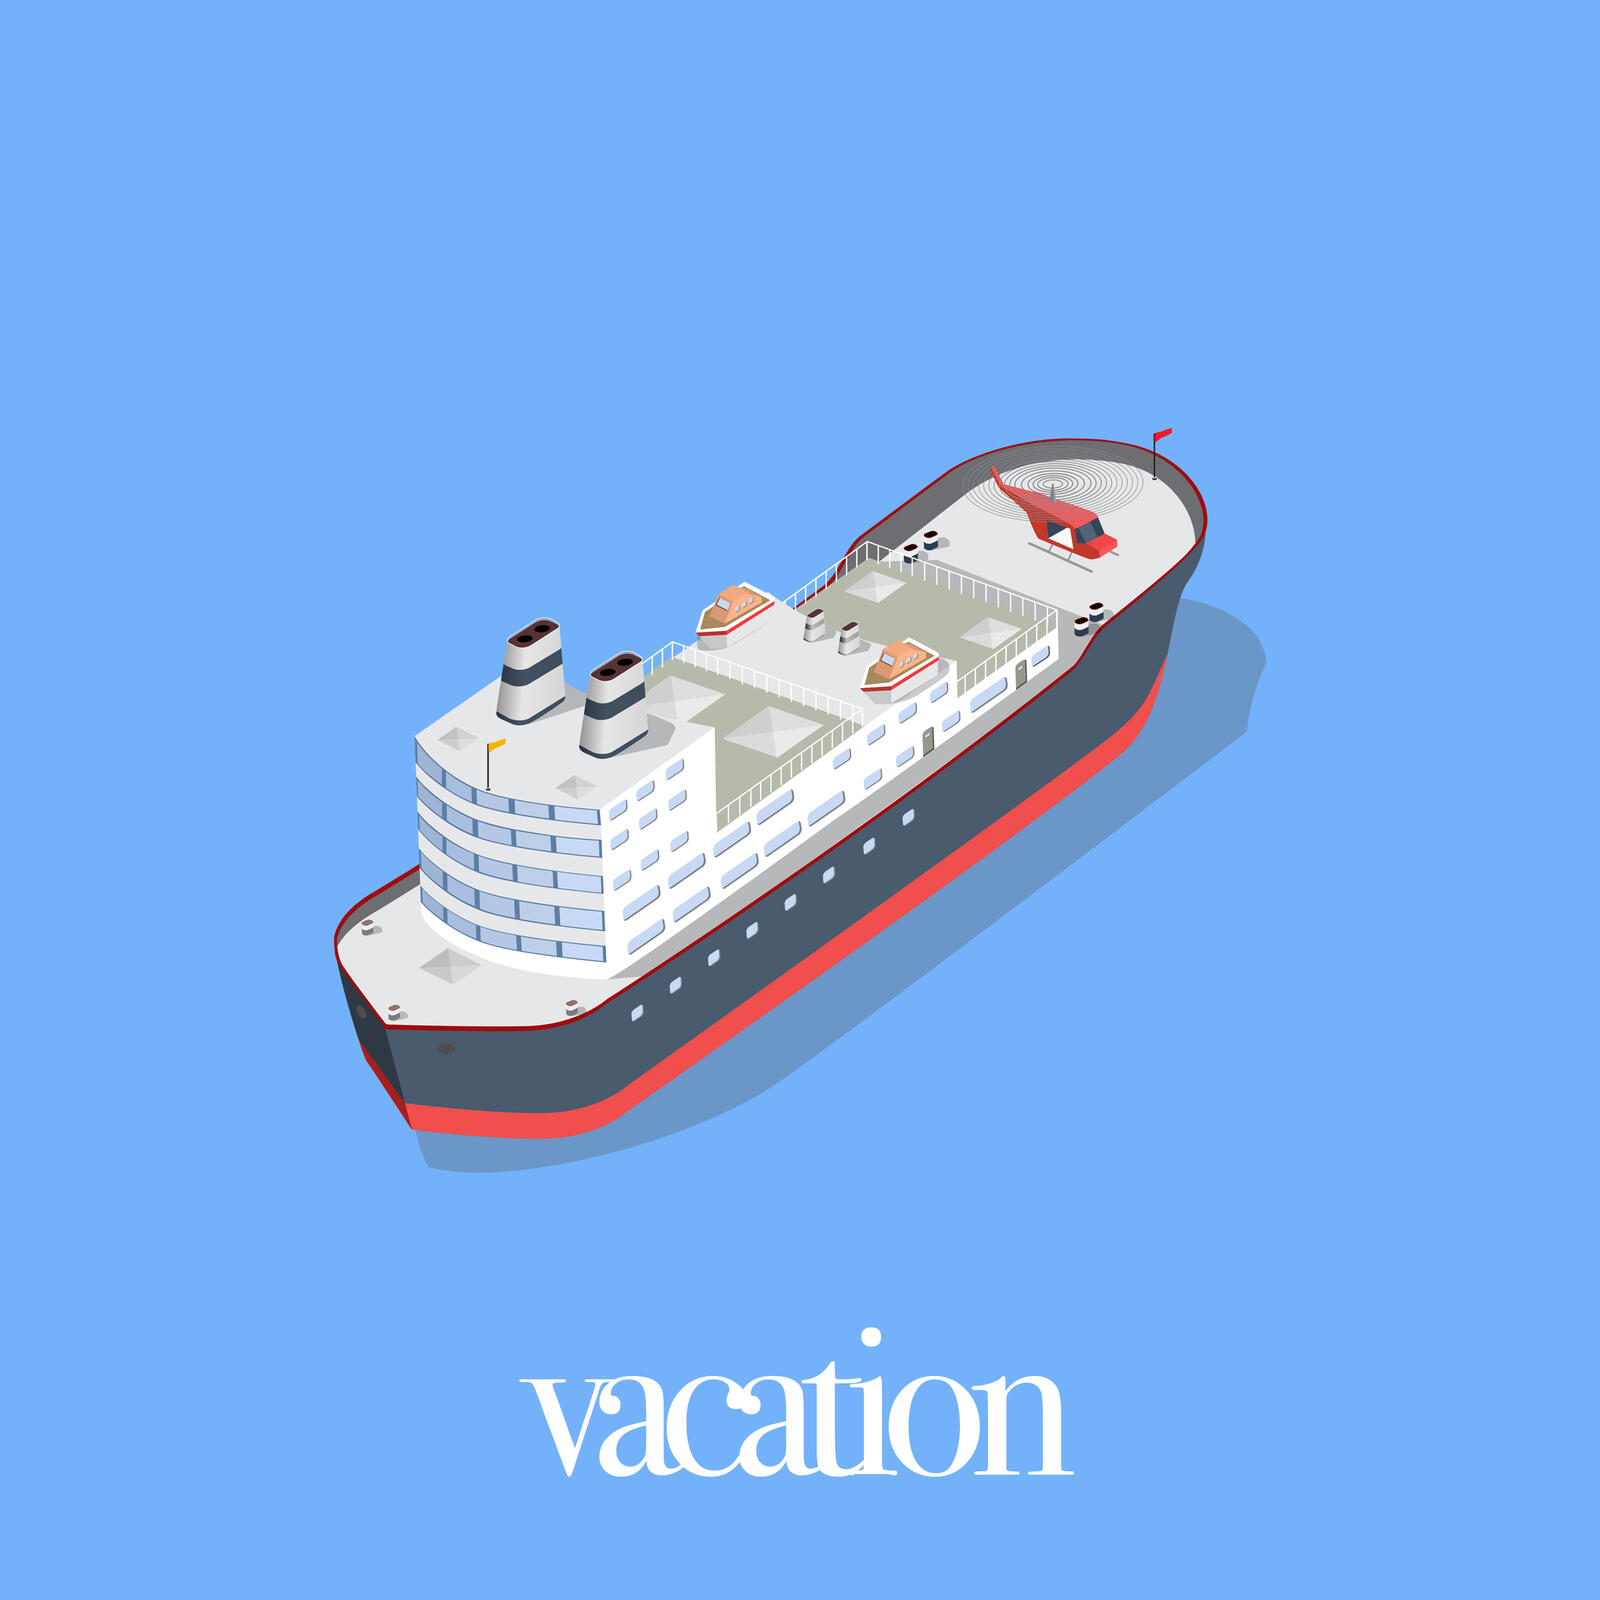 16: Vacation (w/ Michelle)